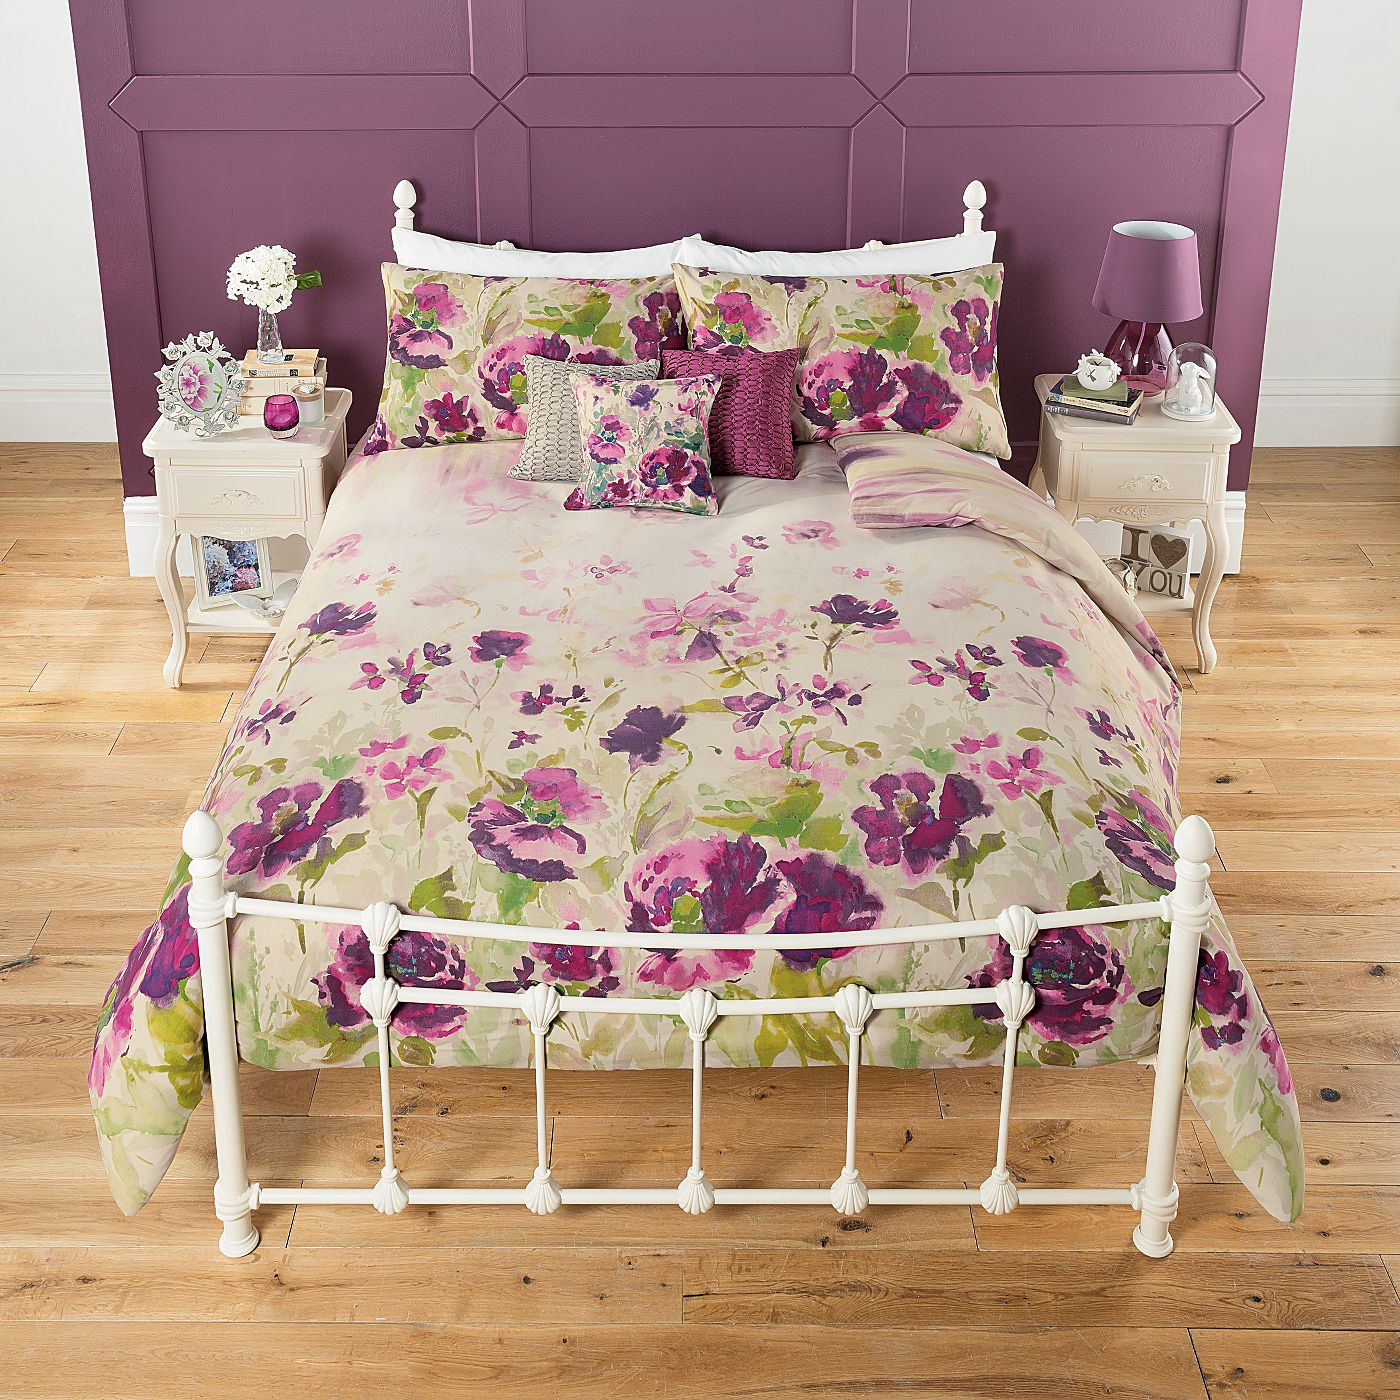 George Home Watercolour Floral Duvet Range | Duvet Covers ...